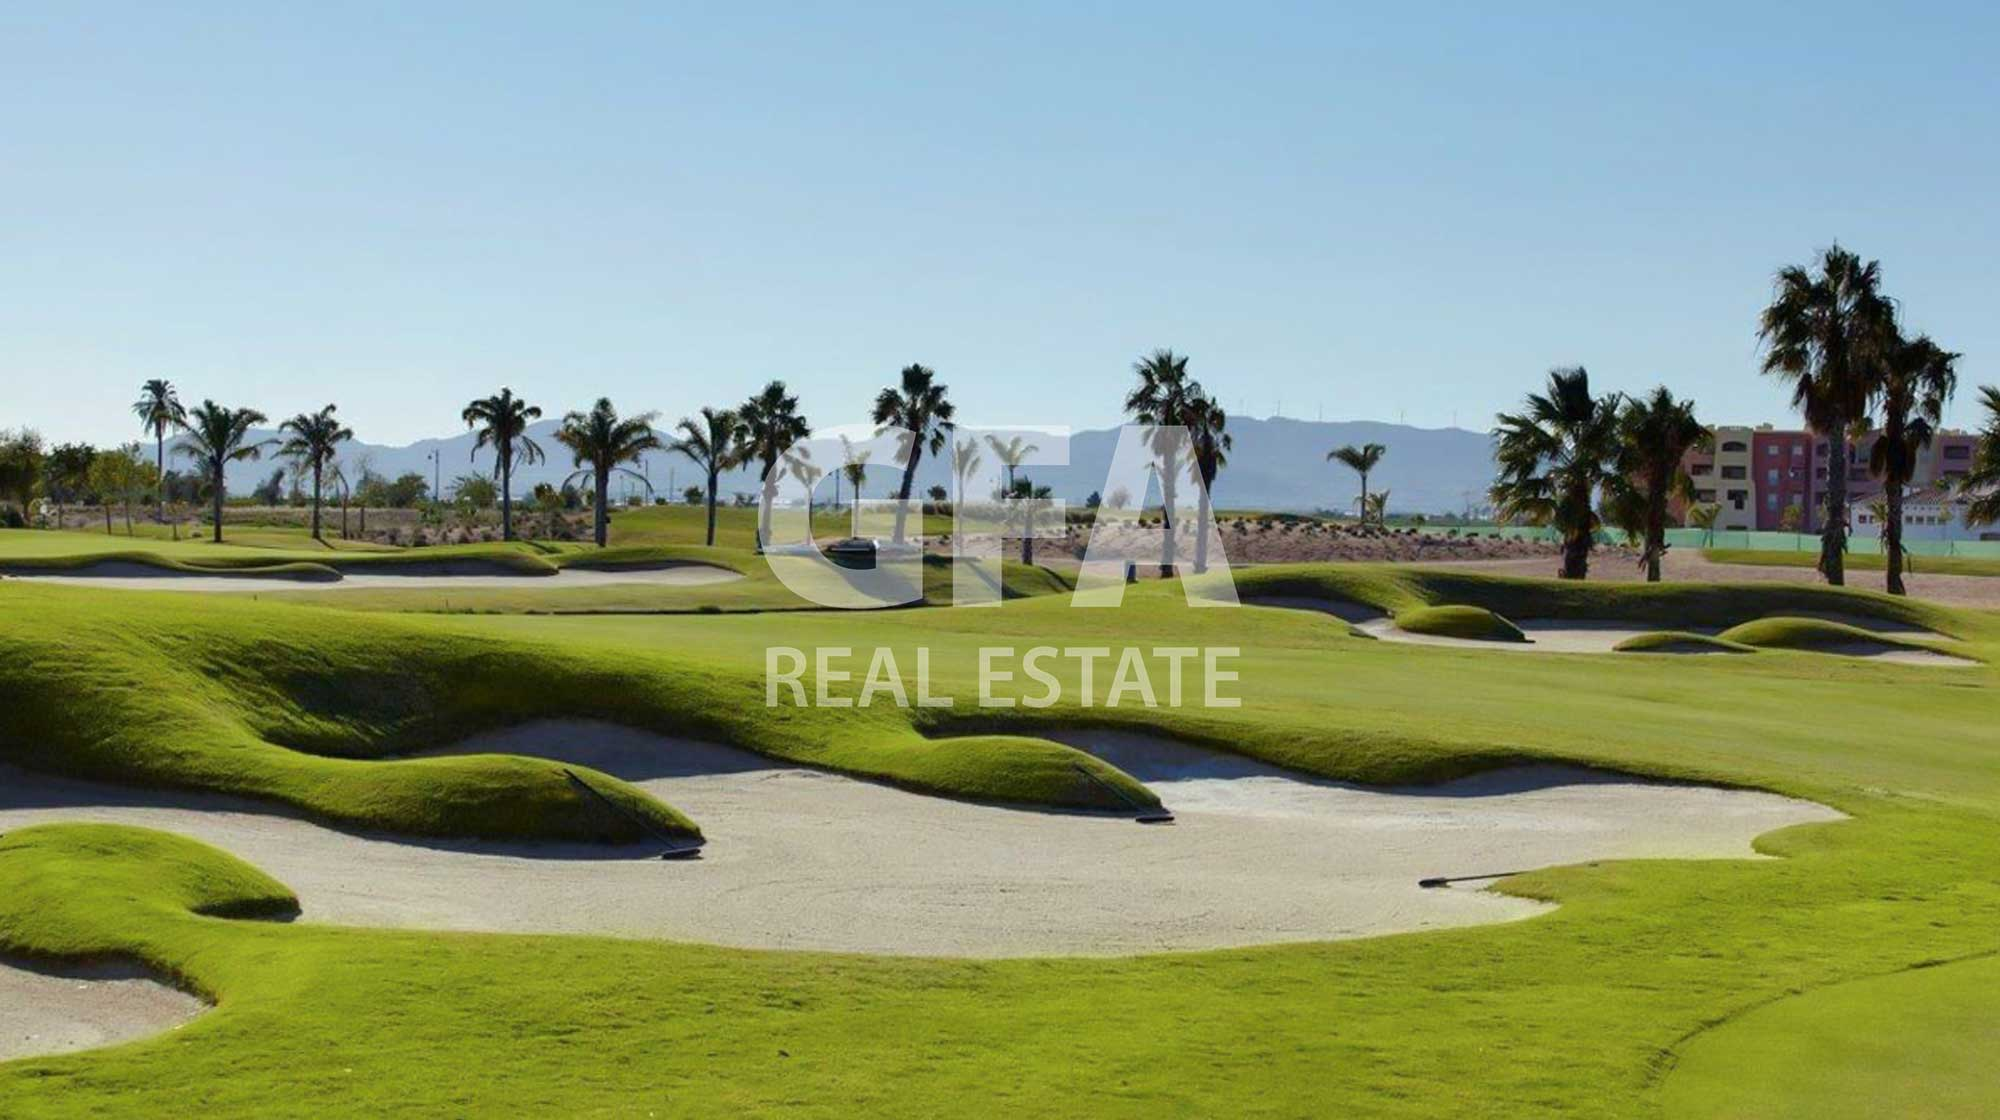 mar-menor-golf-resort-viviendas-obra-nuyeva (7)